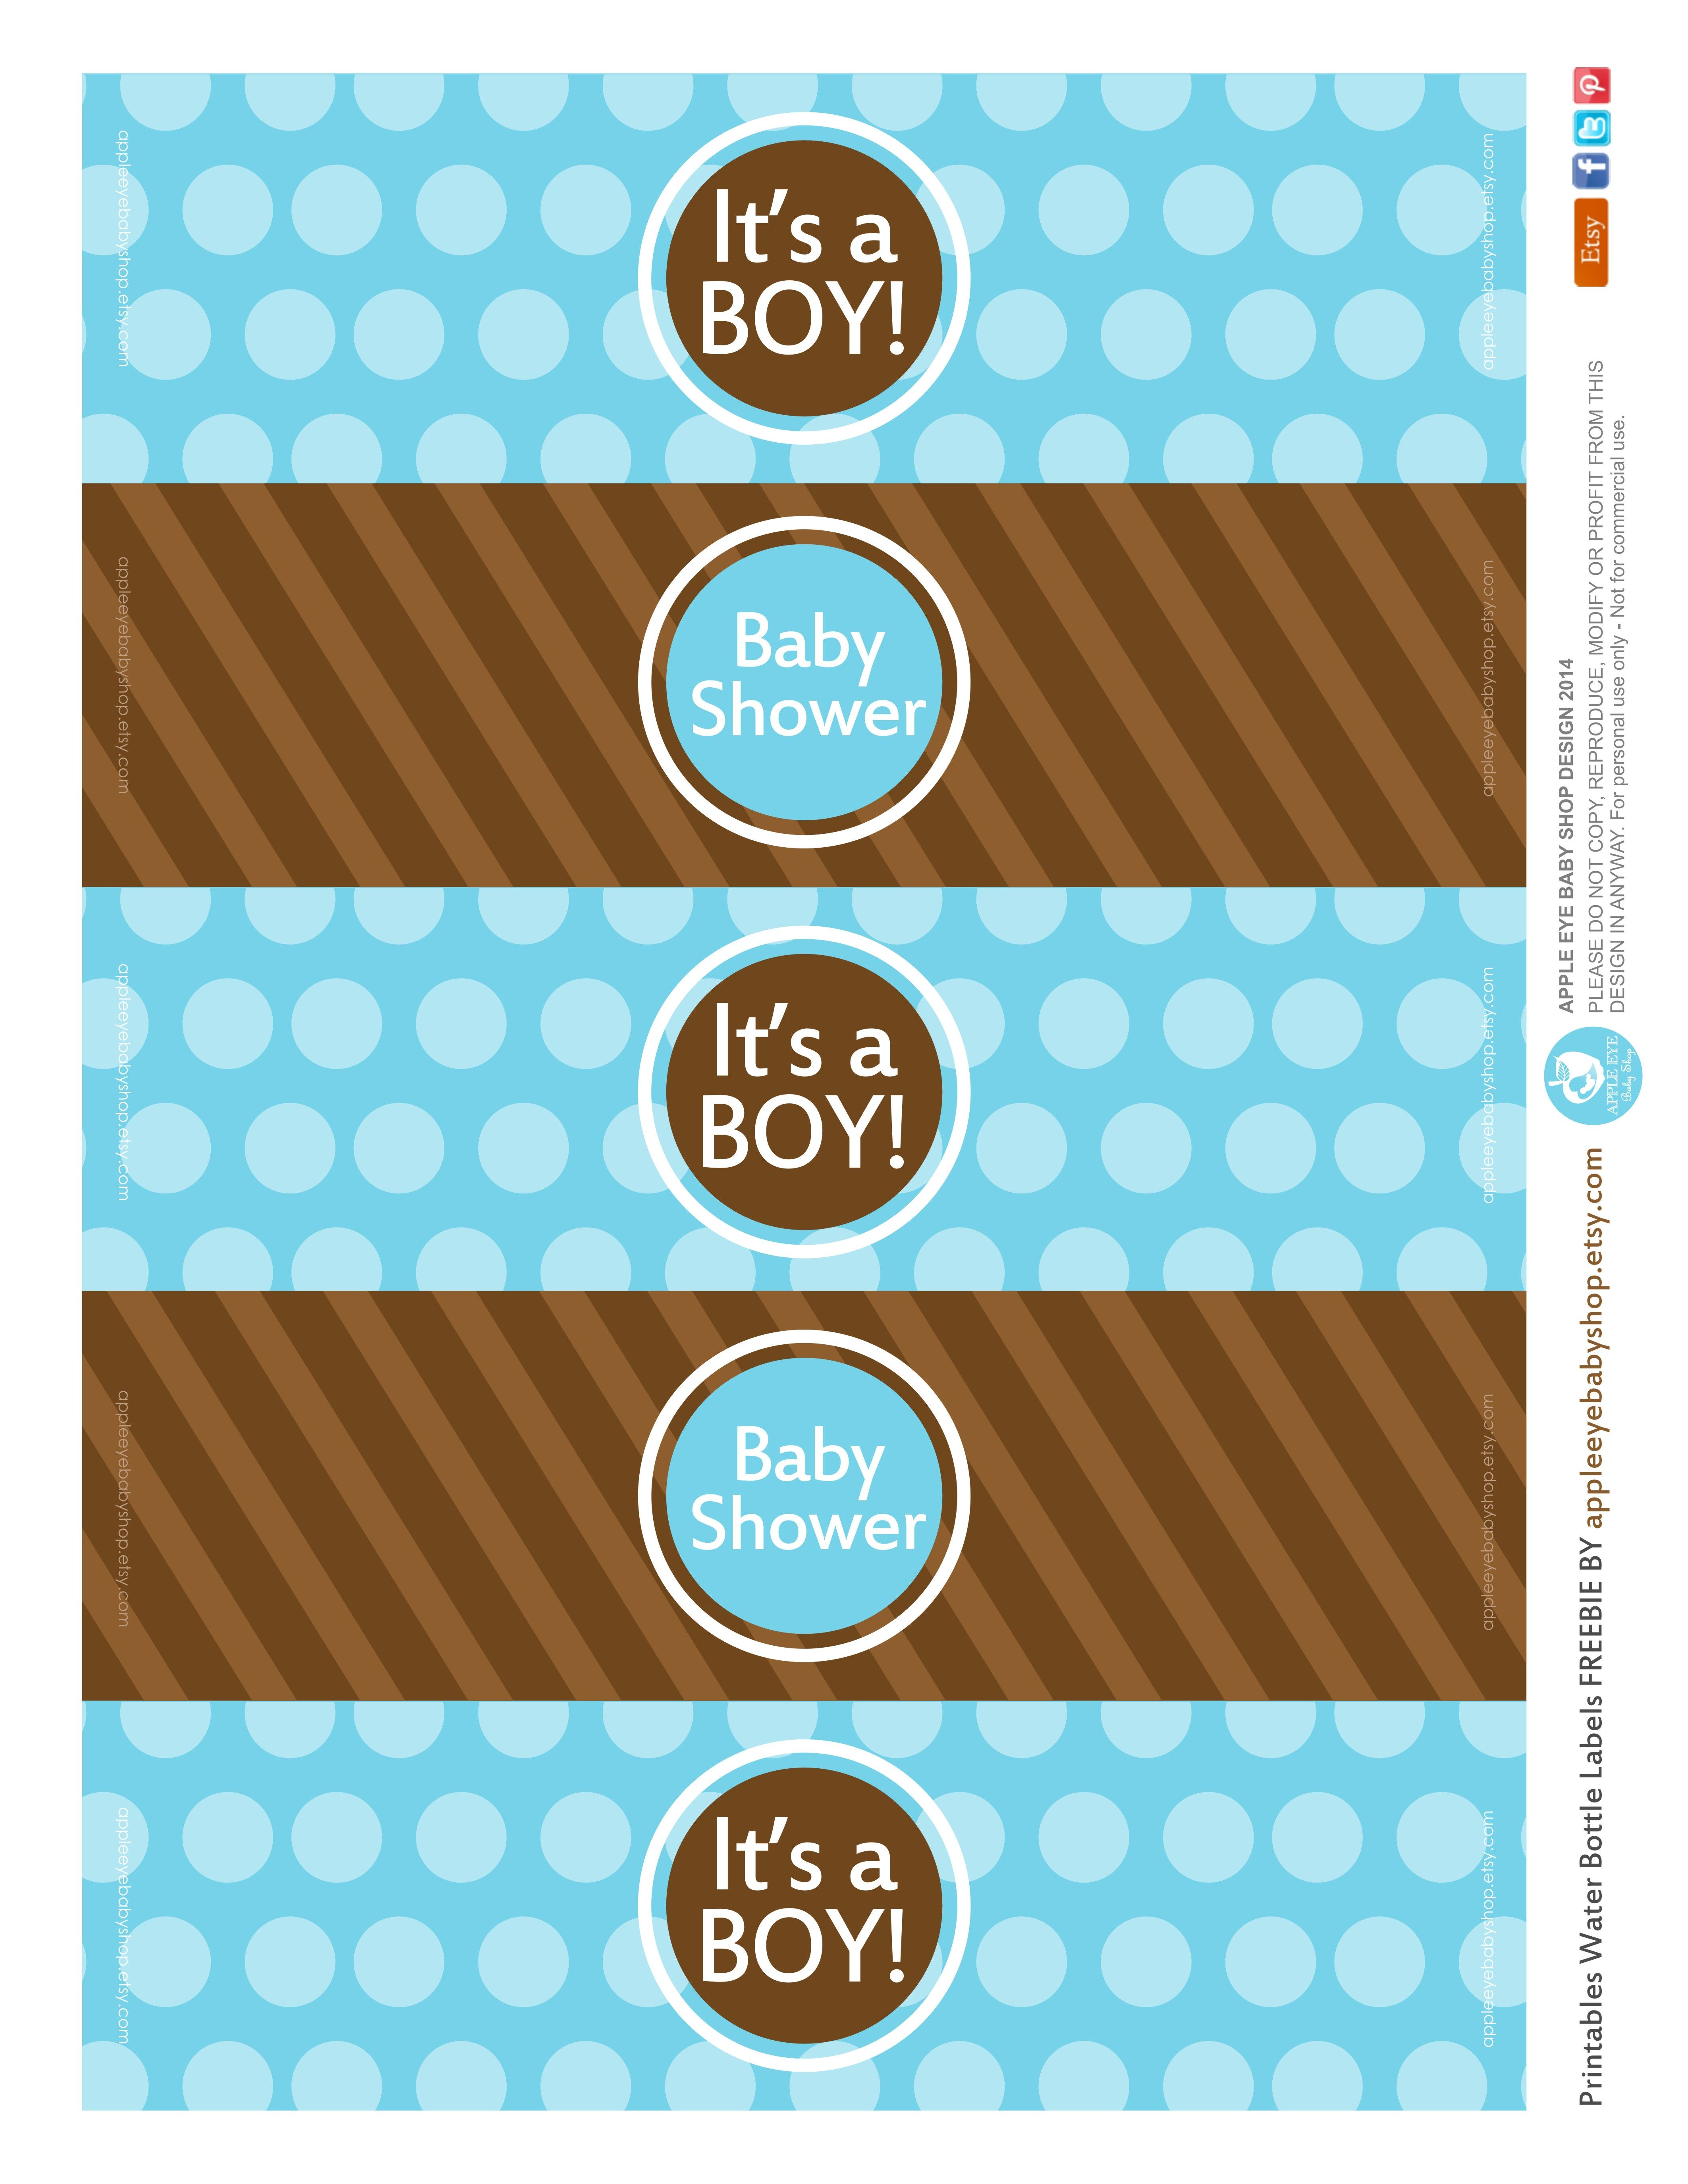 All Sizes Free Printable Water Bottle Labels Baby Boy By Le Eye Flickr Photo Sharing